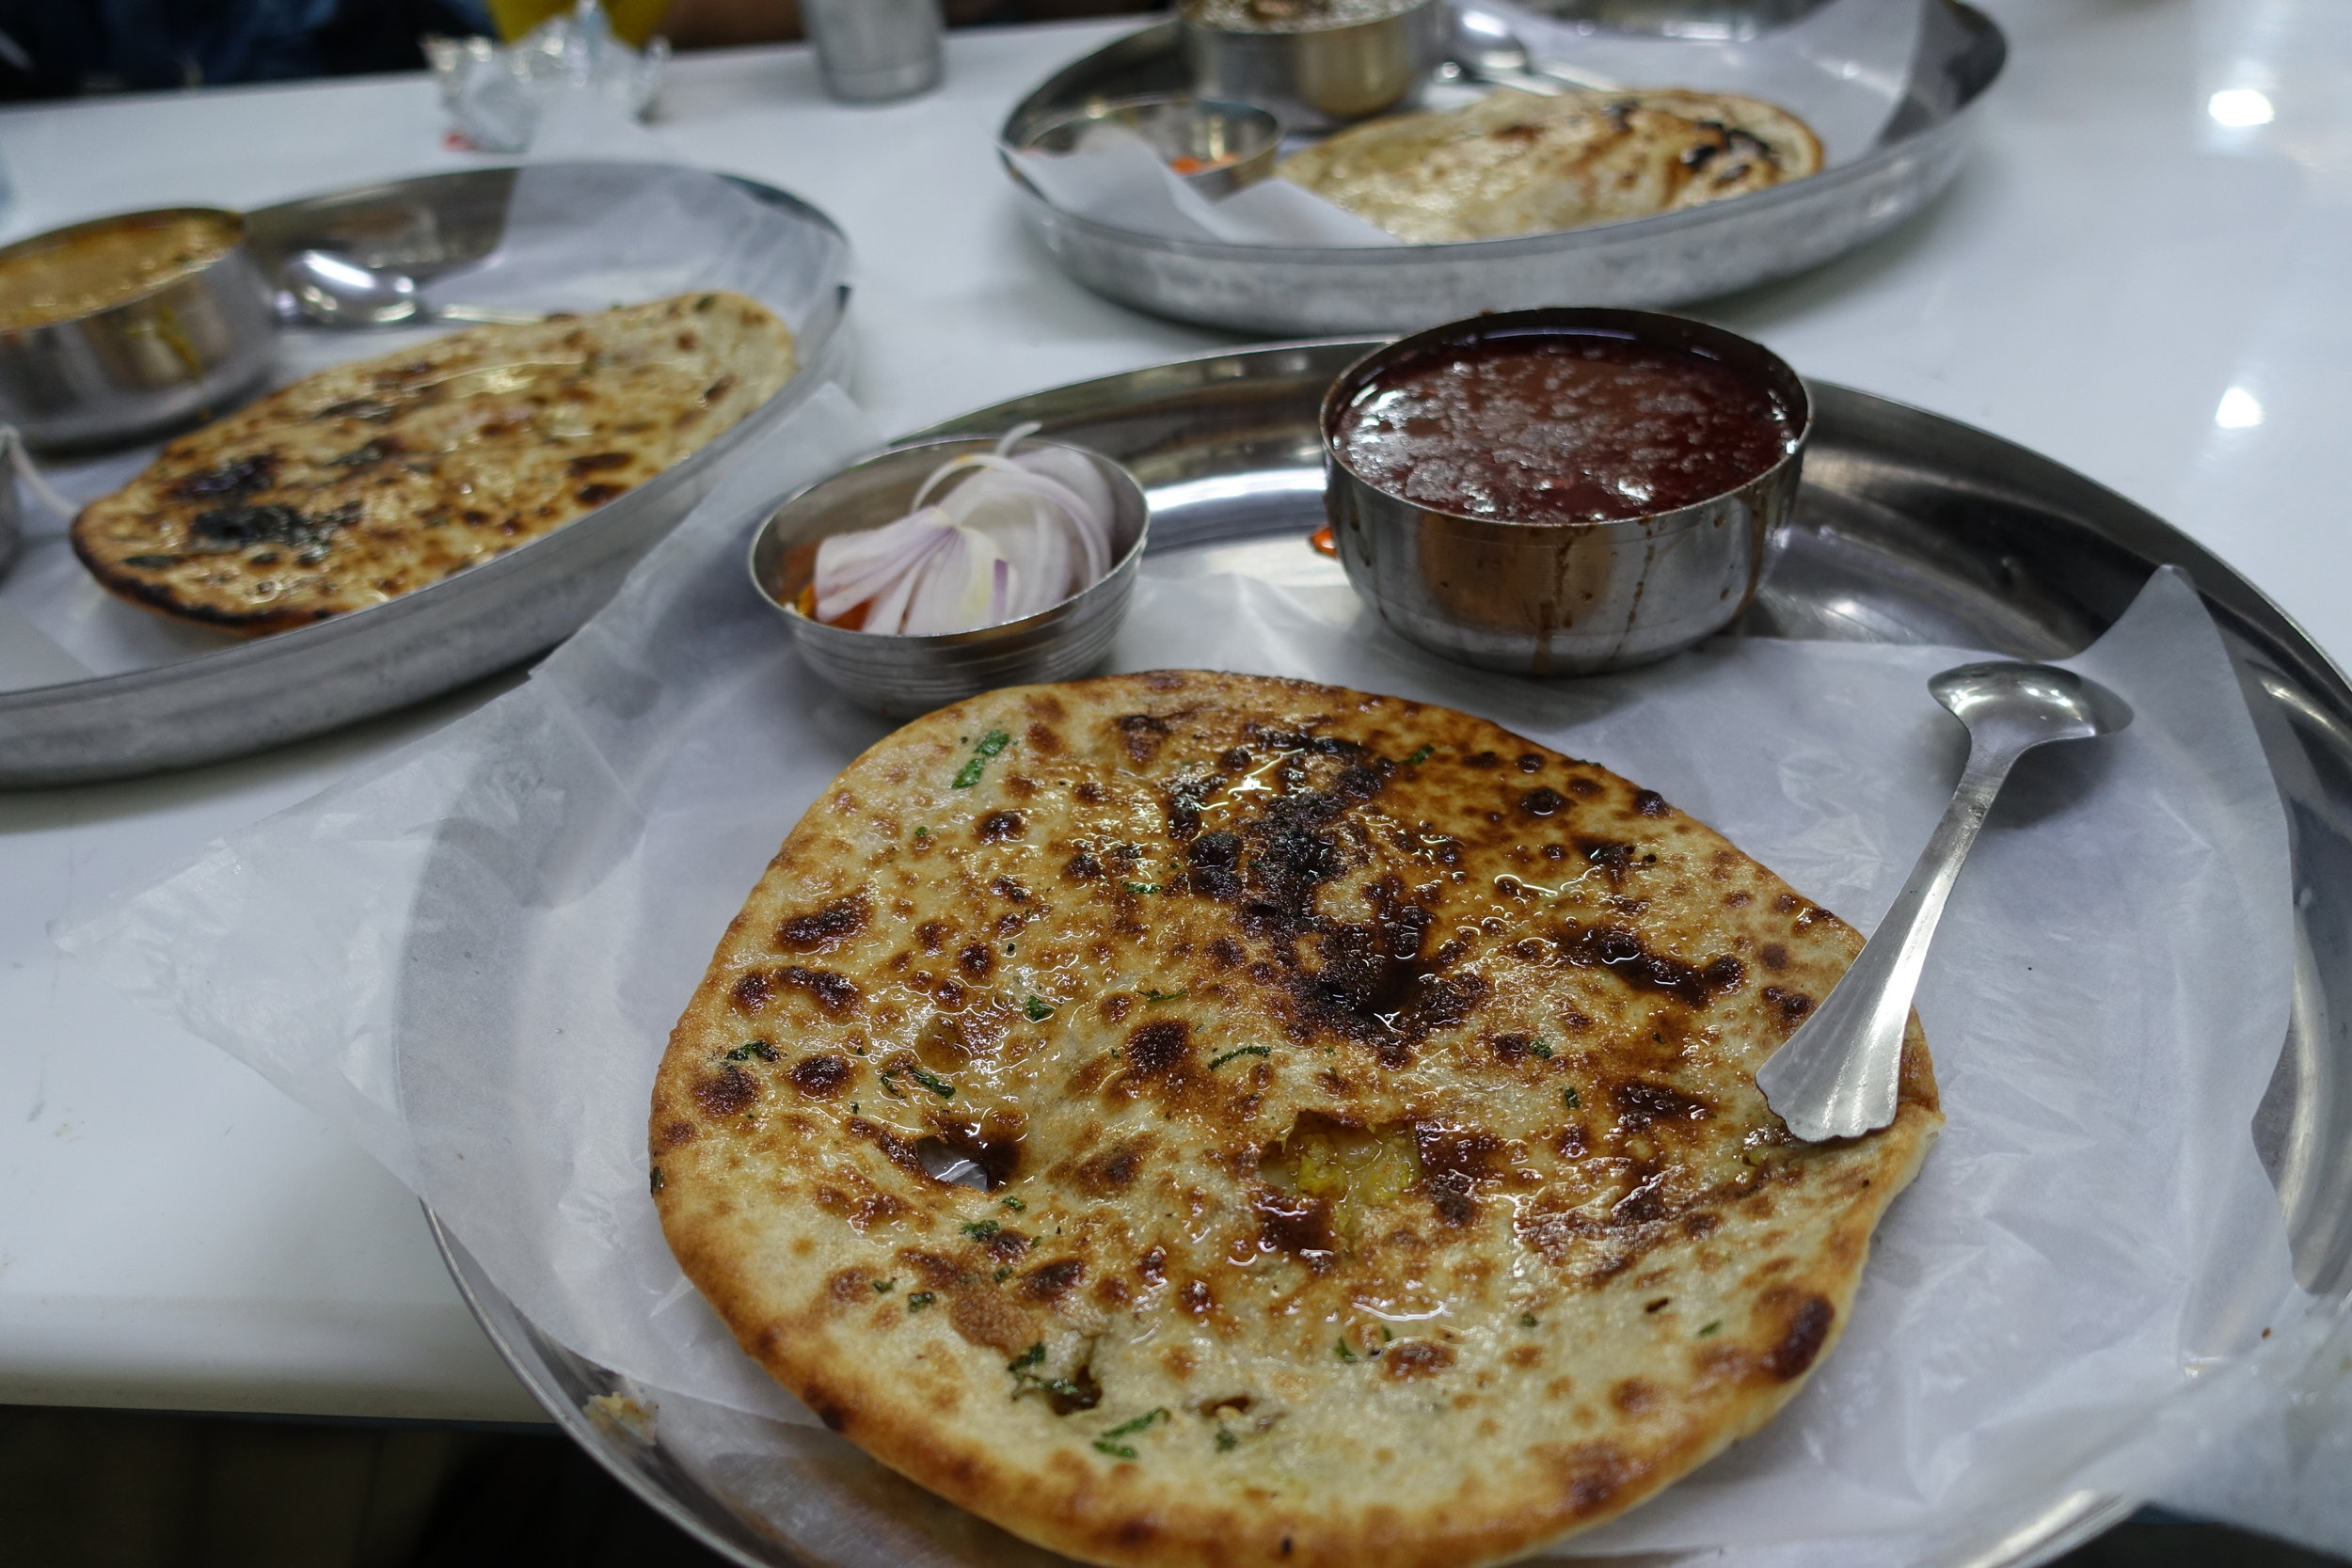 Anthony Bourdain visited this place, Kesar Da Dhaba, because of its masterful craftsmanship of meals like these.